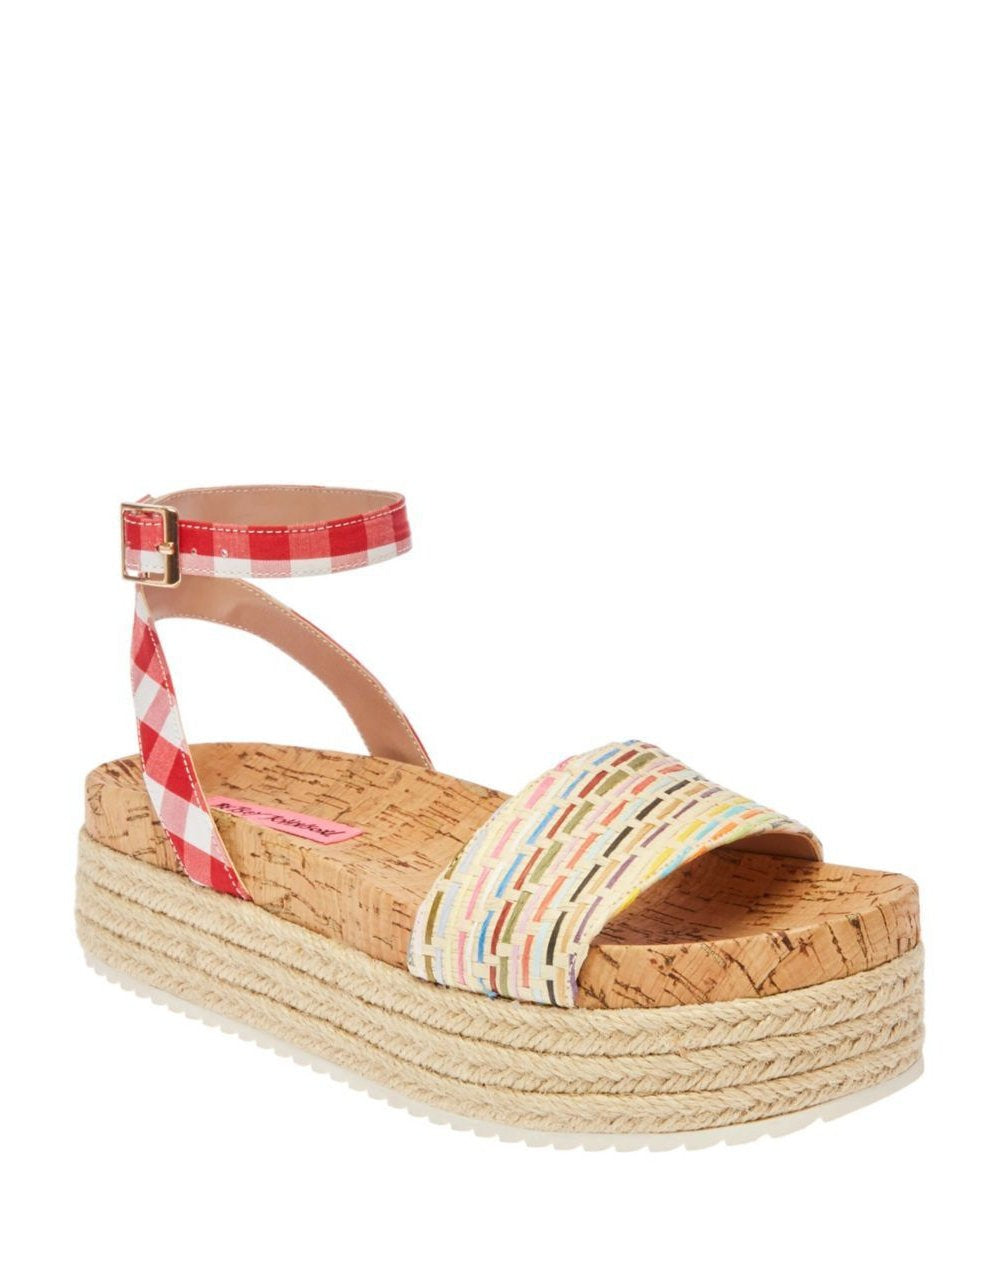 THELMA NATURAL - SHOES - Betsey Johnson